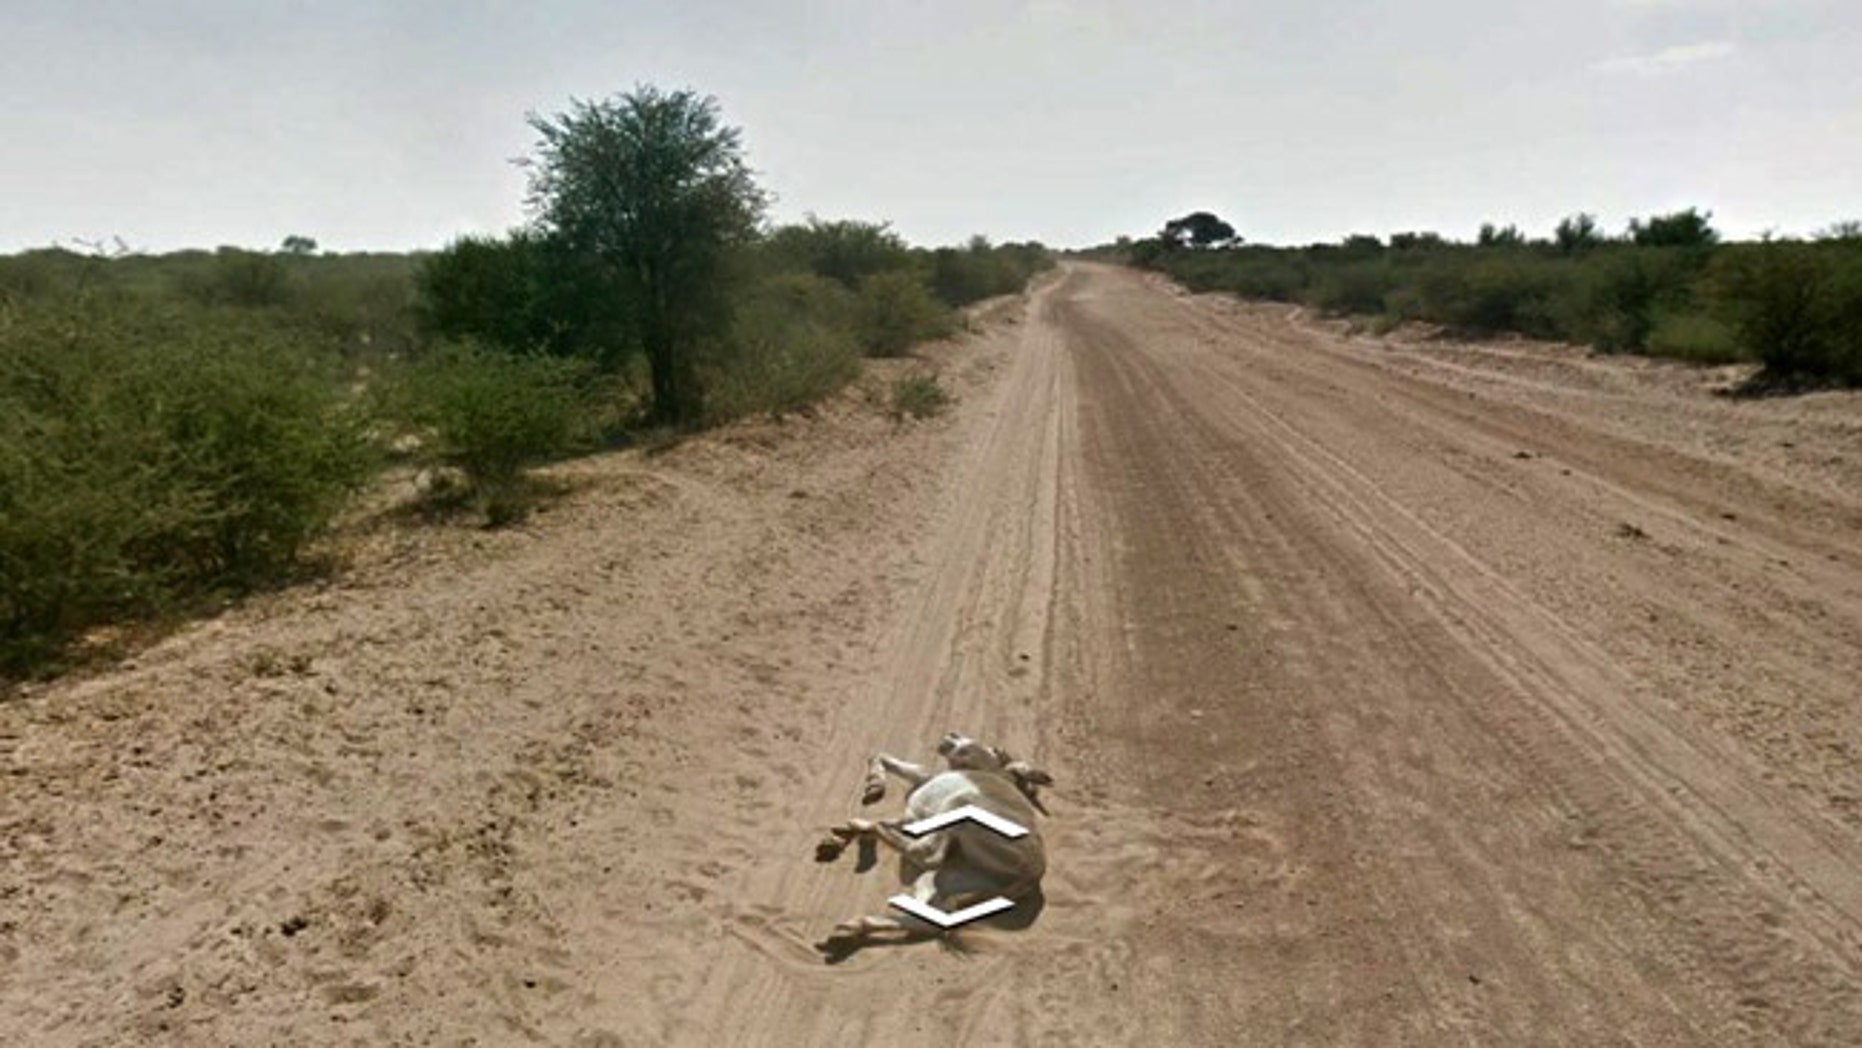 Eagle-eyed web users say this Google Street View image proves that a Google mapping car ran over a donkey.